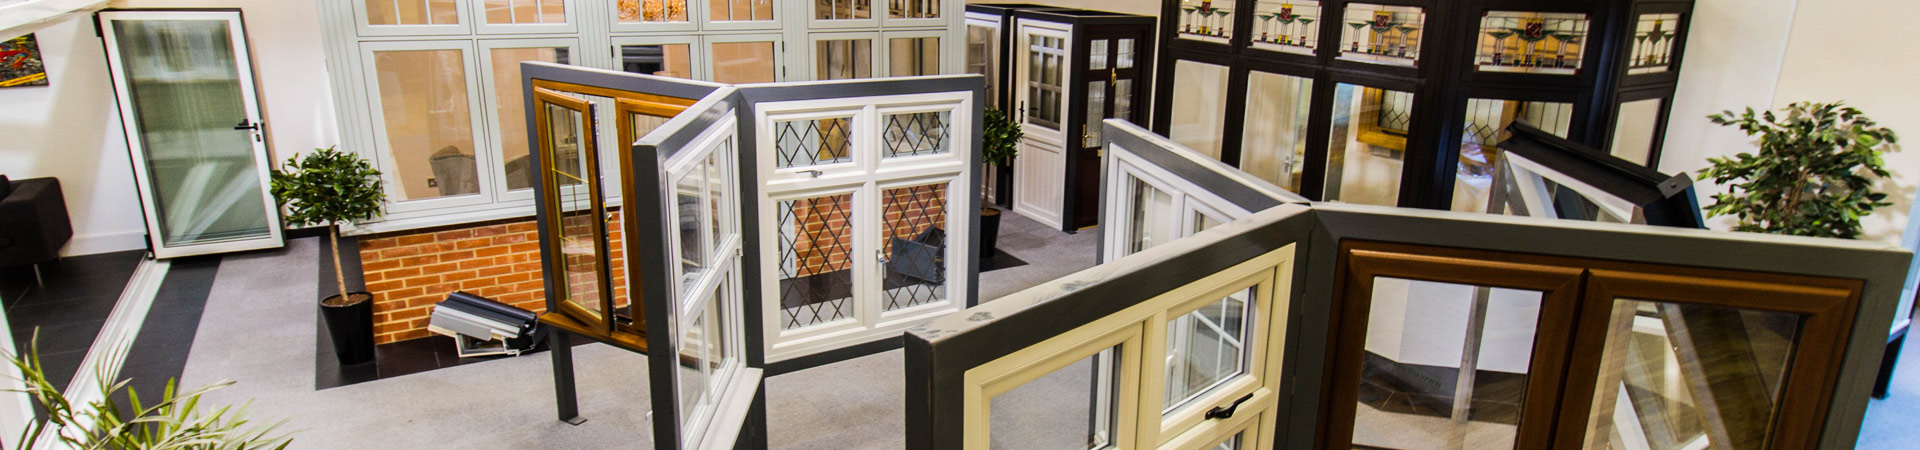 Double glazing showroom in Essex